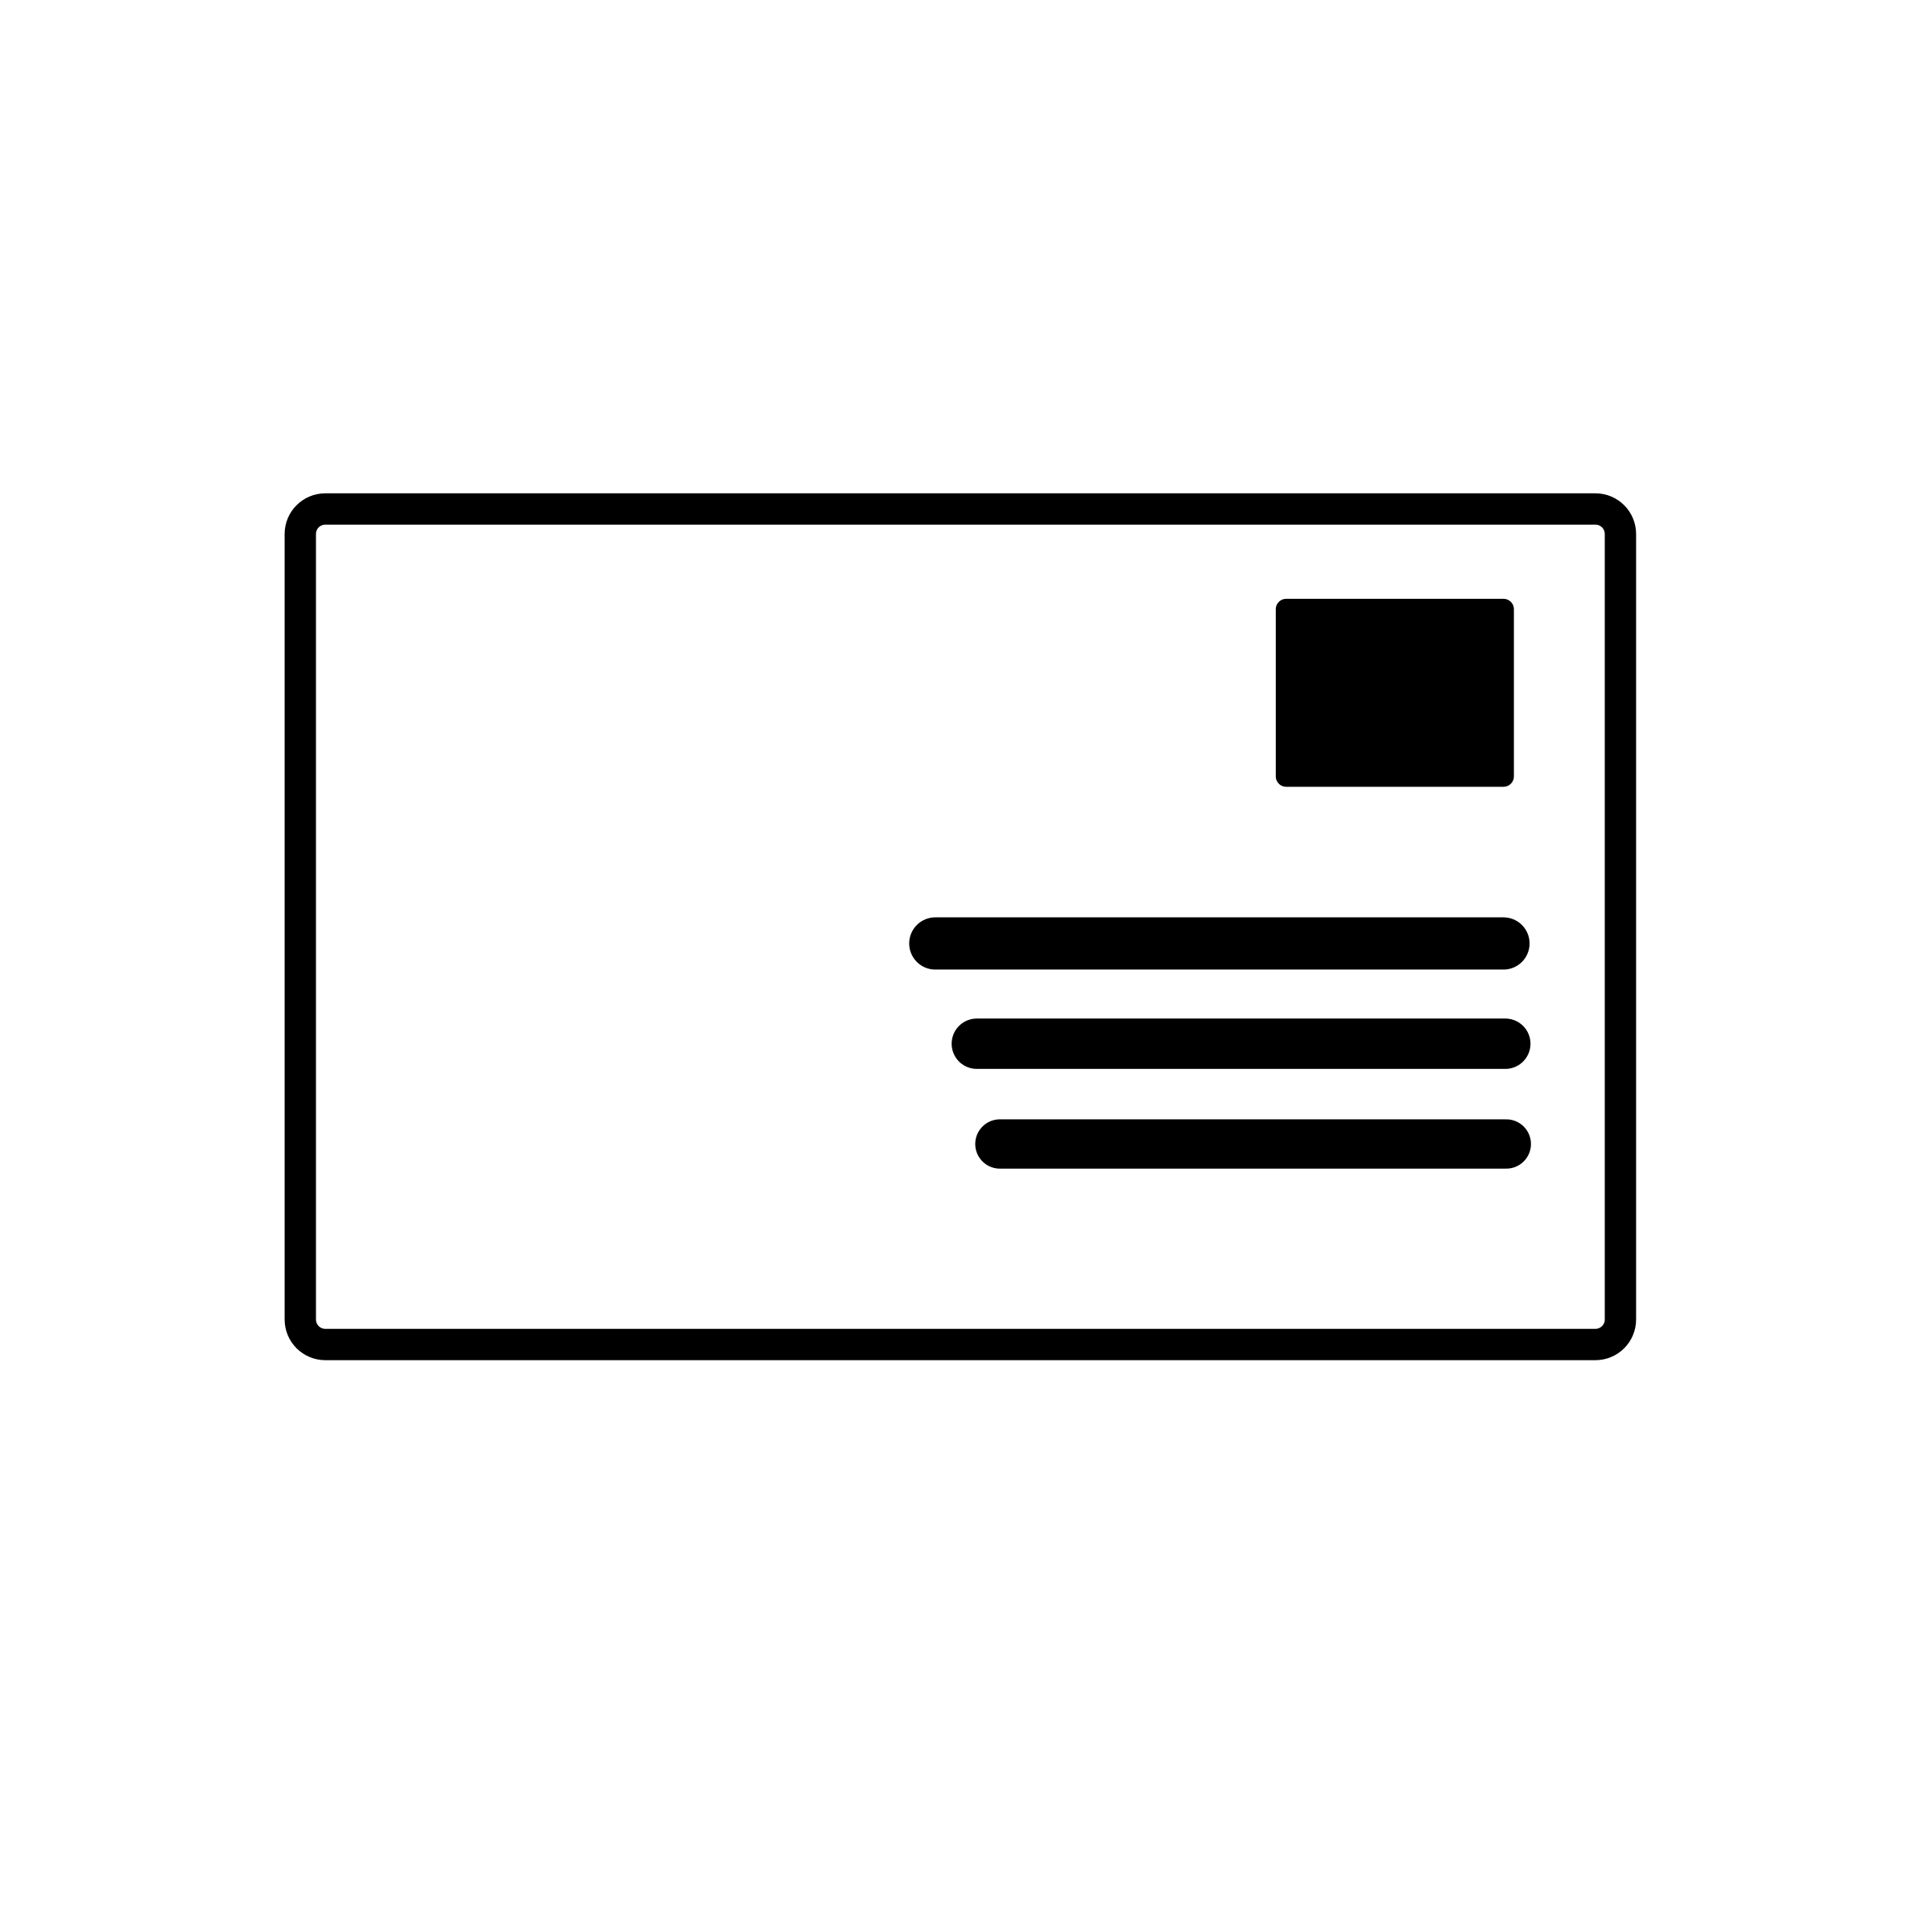 Mail 2 icon by Anonymous